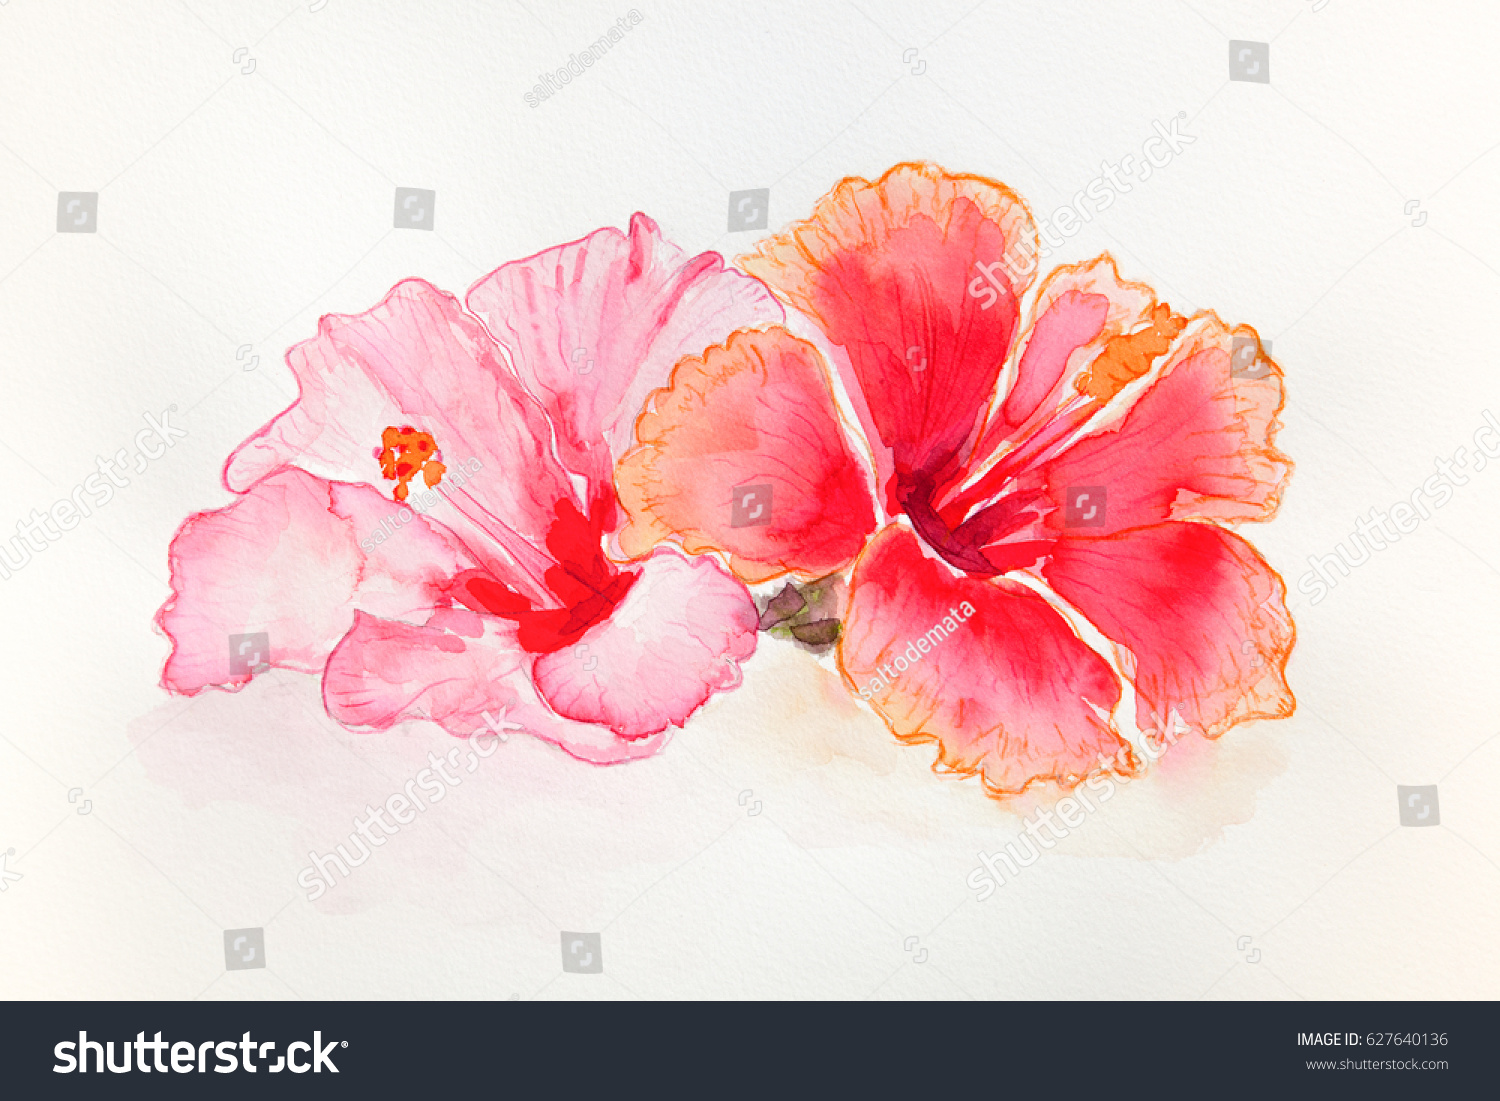 Watercolor hibiscus flowers stock illustration 627640136 shutterstock watercolor hibiscus flowers izmirmasajfo